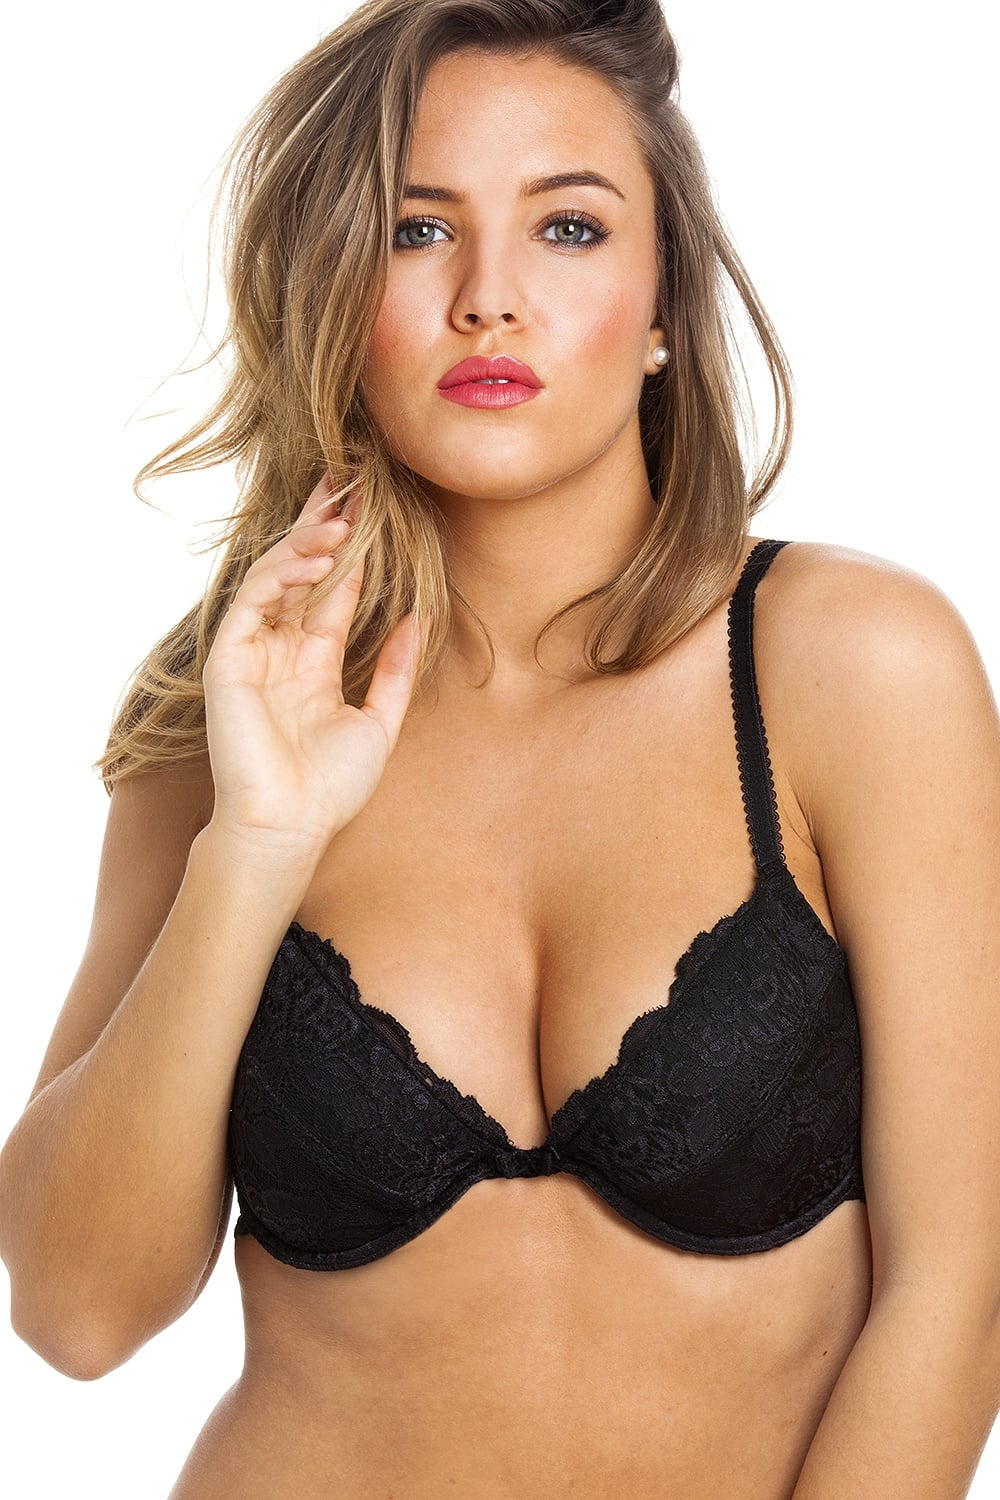 Buy Push-Up Bras at Macy's and get FREE SHIPPING with $99 purchase! Great selection of push-up bras, wireless bras & other most popular bra styles and brands.